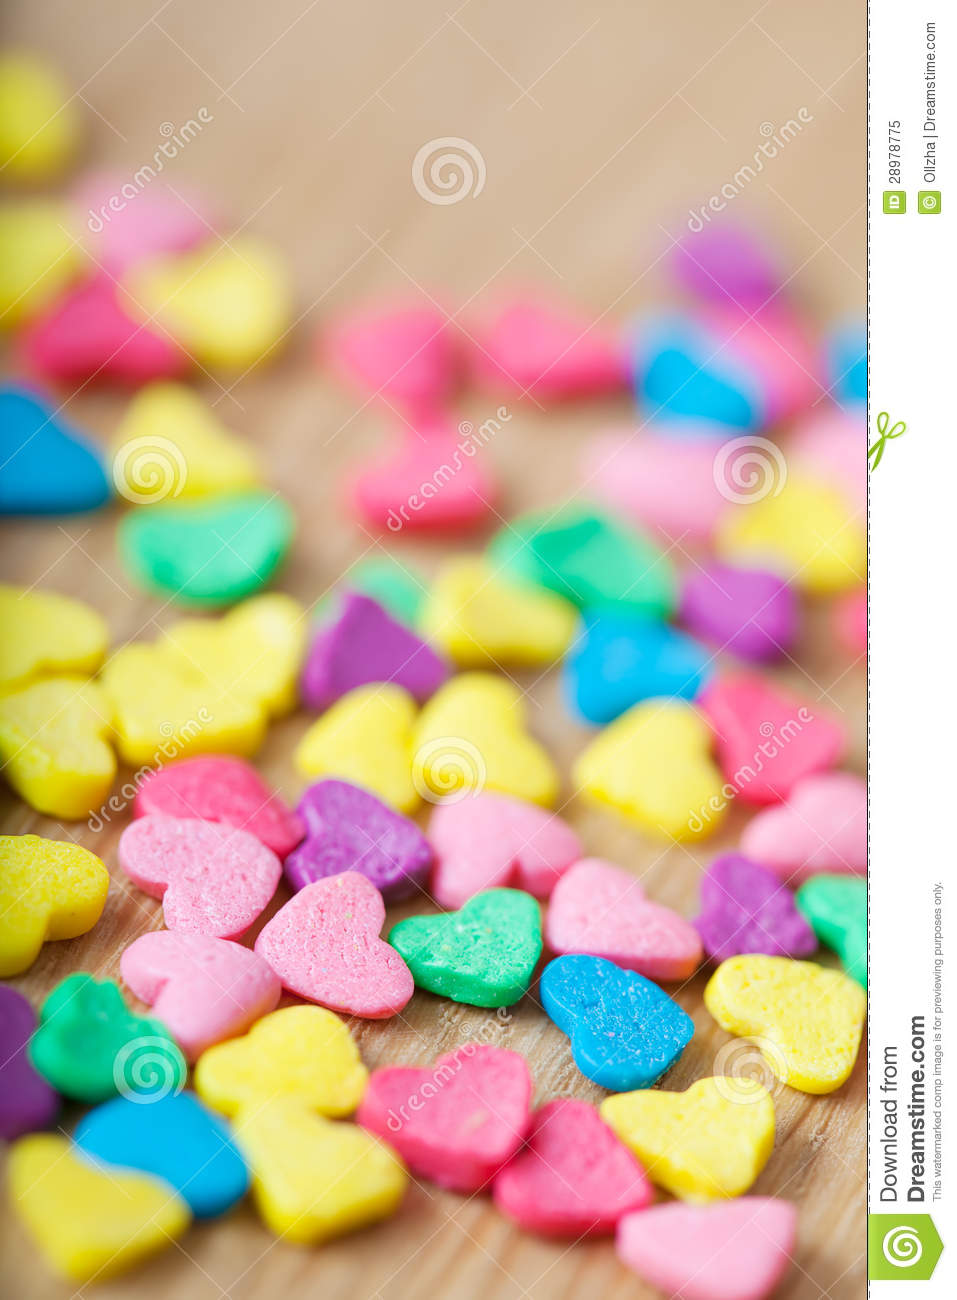 Sweet Colorful Candy Hearts Royalty Free Stock Photo - Image: 28978775: dreamstime.com/royalty-free-stock-photo-sweet-colorful-candy-hearts...